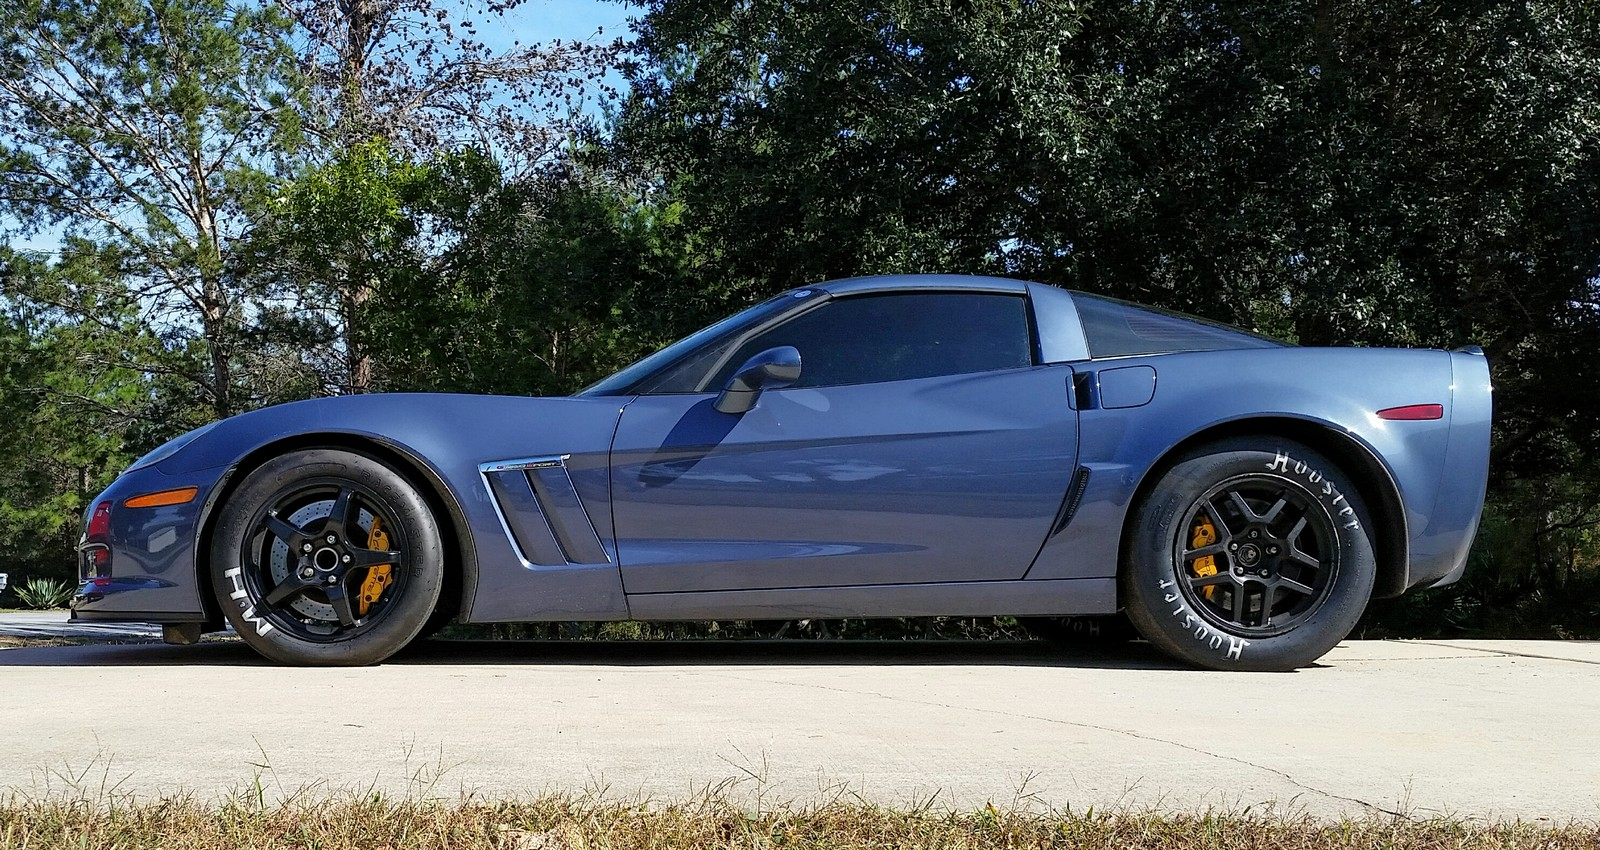 Sonic Blue  2012 Chevrolet Corvette Grand Sport All Motor 6.2L